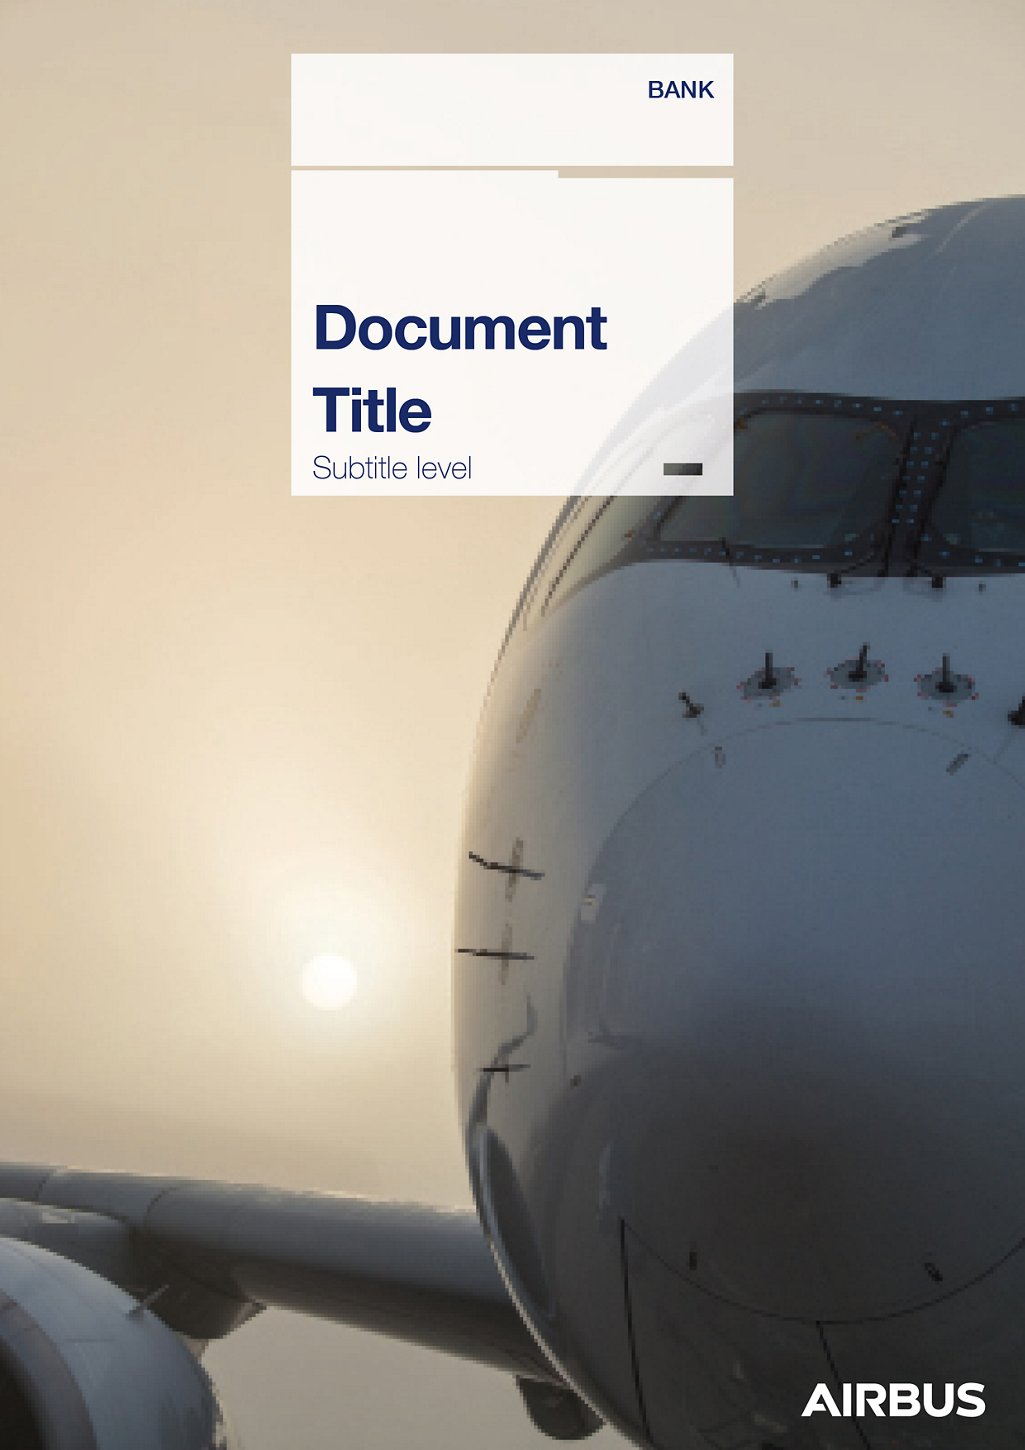 Airbus Bank Brochures 2